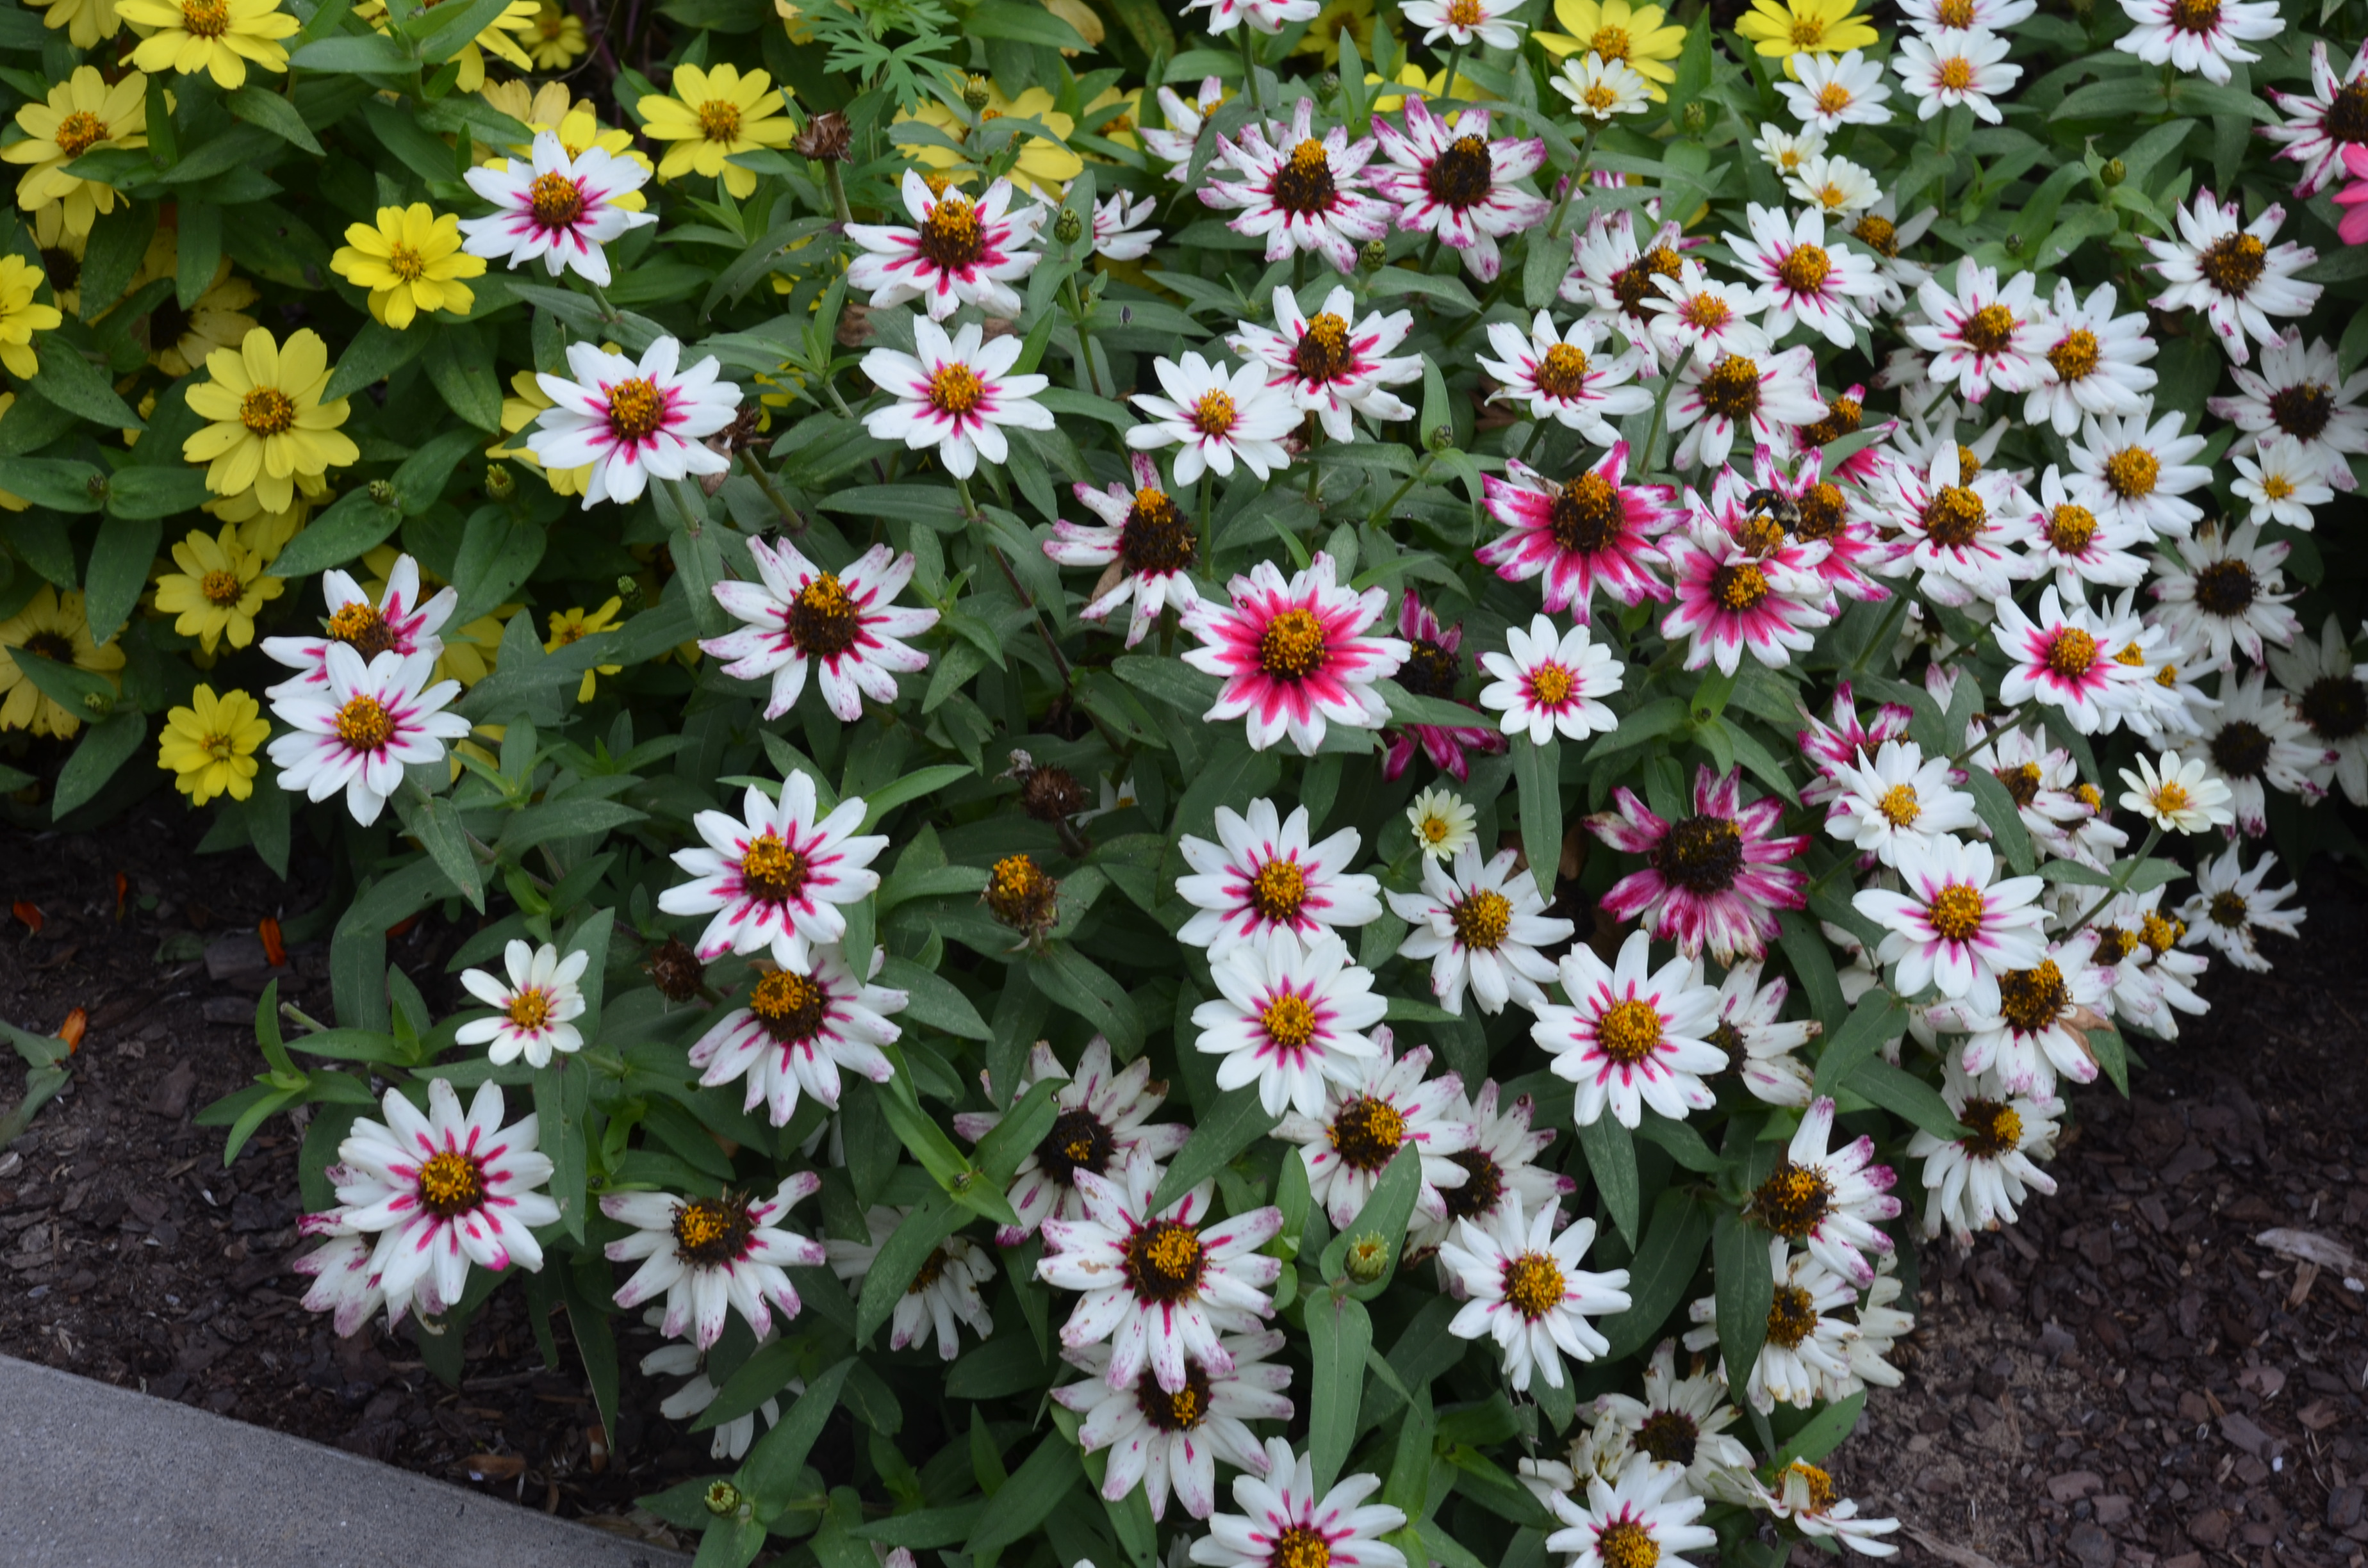 Drought Resistant Garden Ideas Star Zinnias Handle Heat And Dry Weather | What Grows